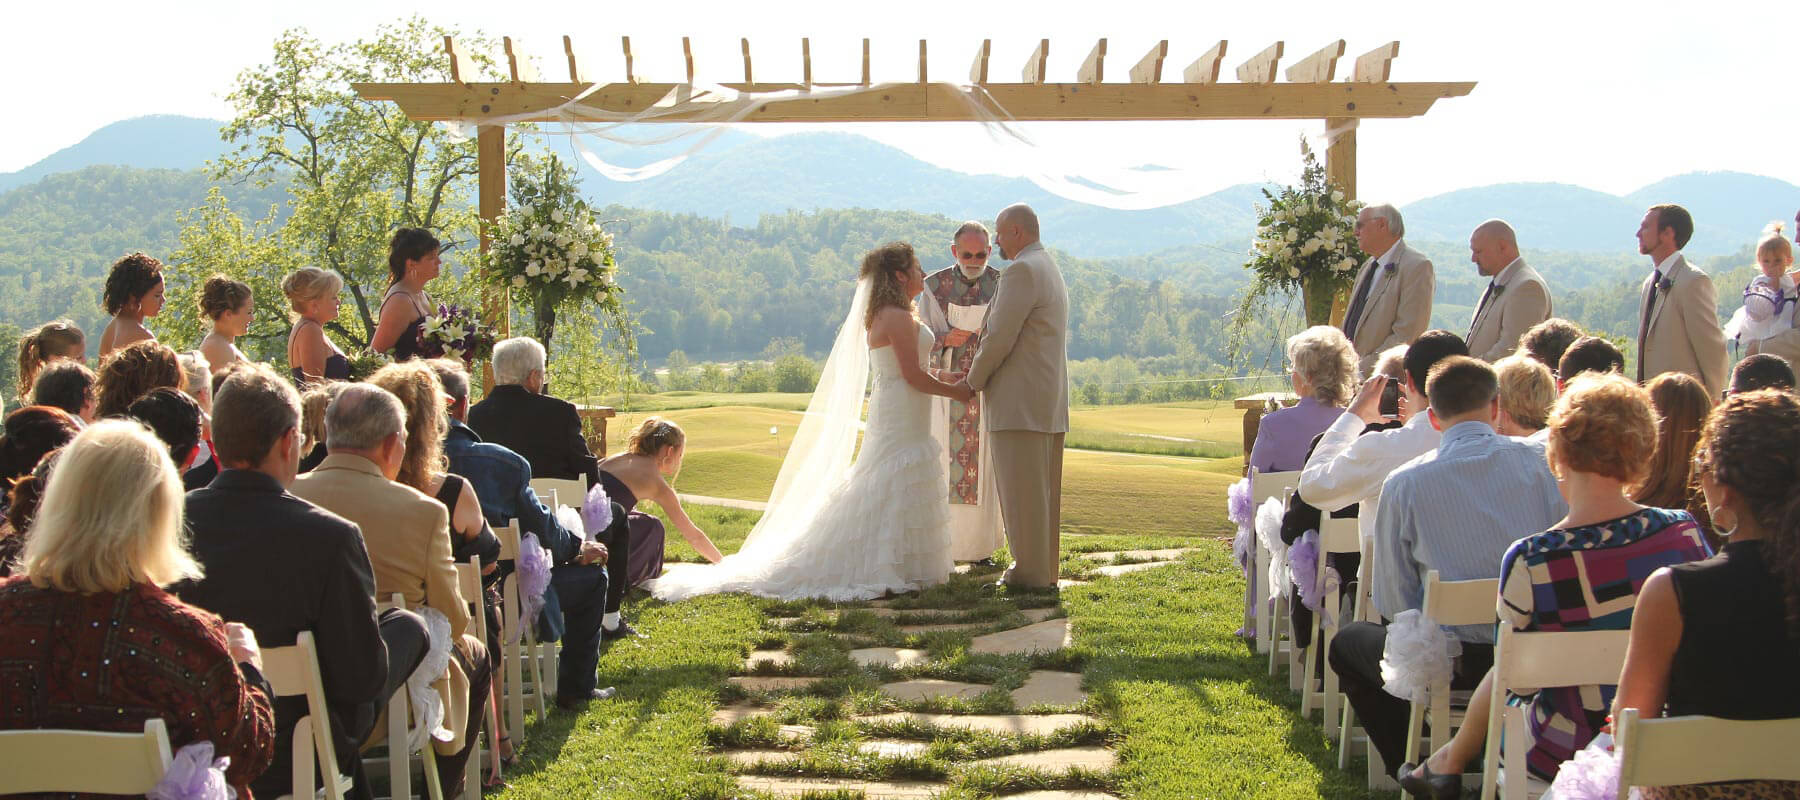 Brtown Valley Outdoor Wedding Venue Georgia Sunset Terrace